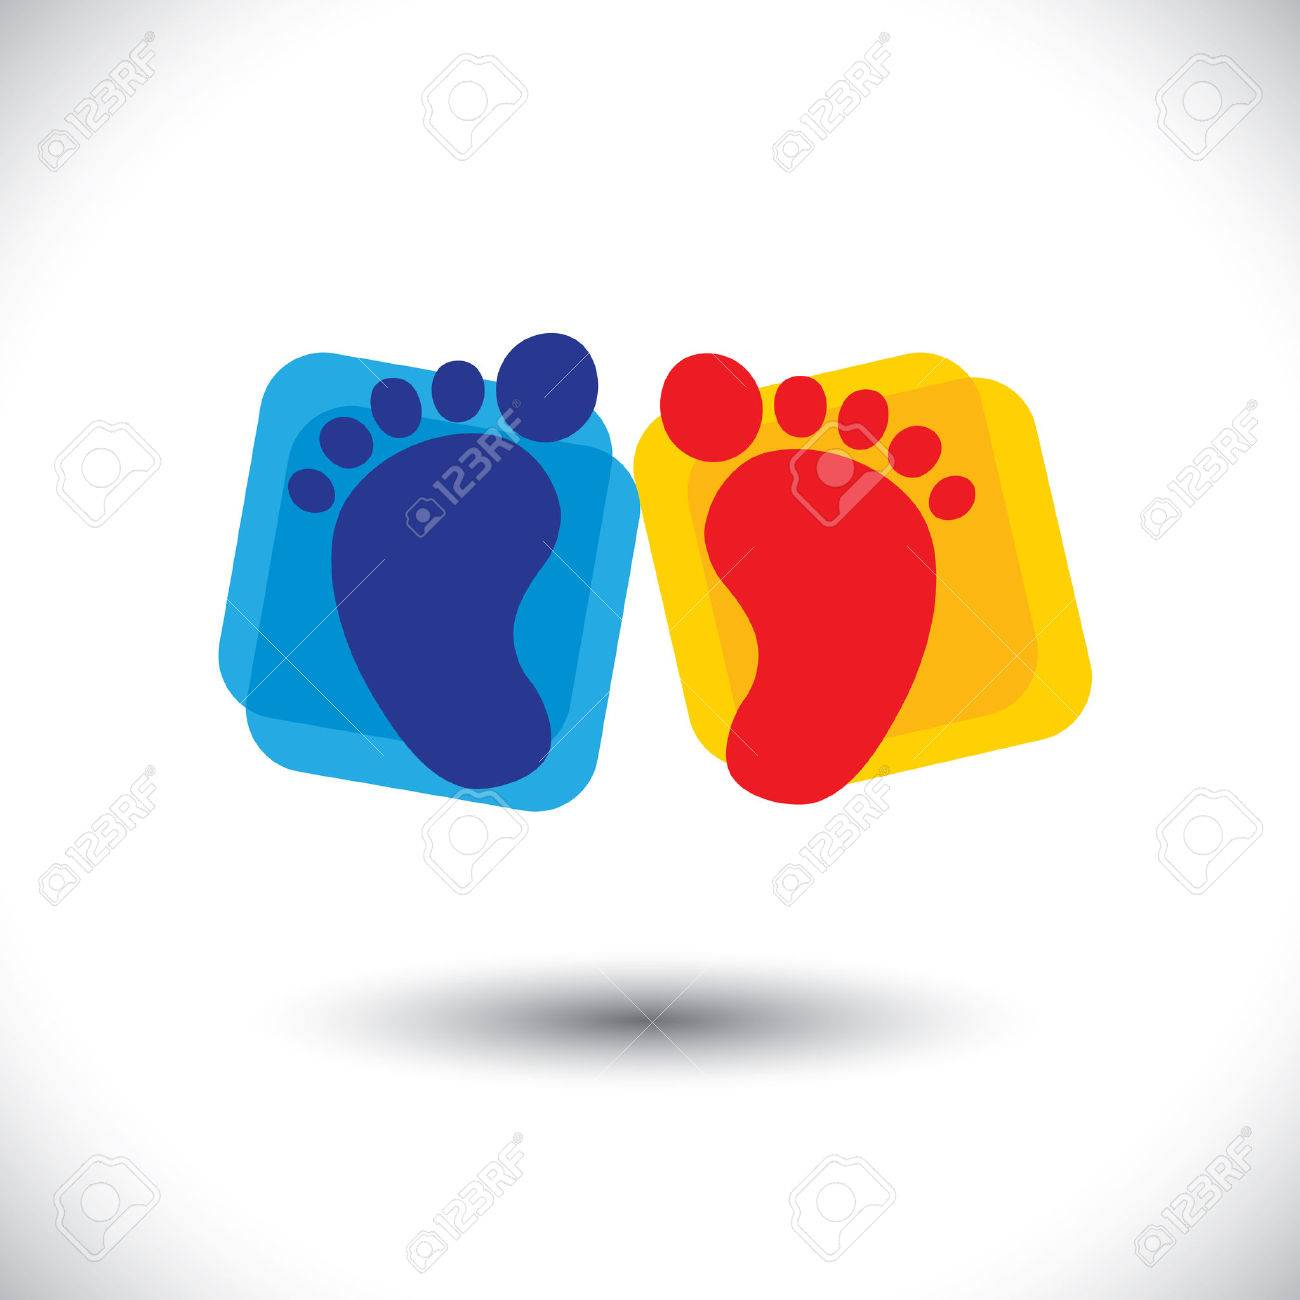 Babys colorful pair of foot sign or symbol for nursery school babys colorful pair of foot sign or symbol for nursery school stock vector 22242385 biocorpaavc Gallery